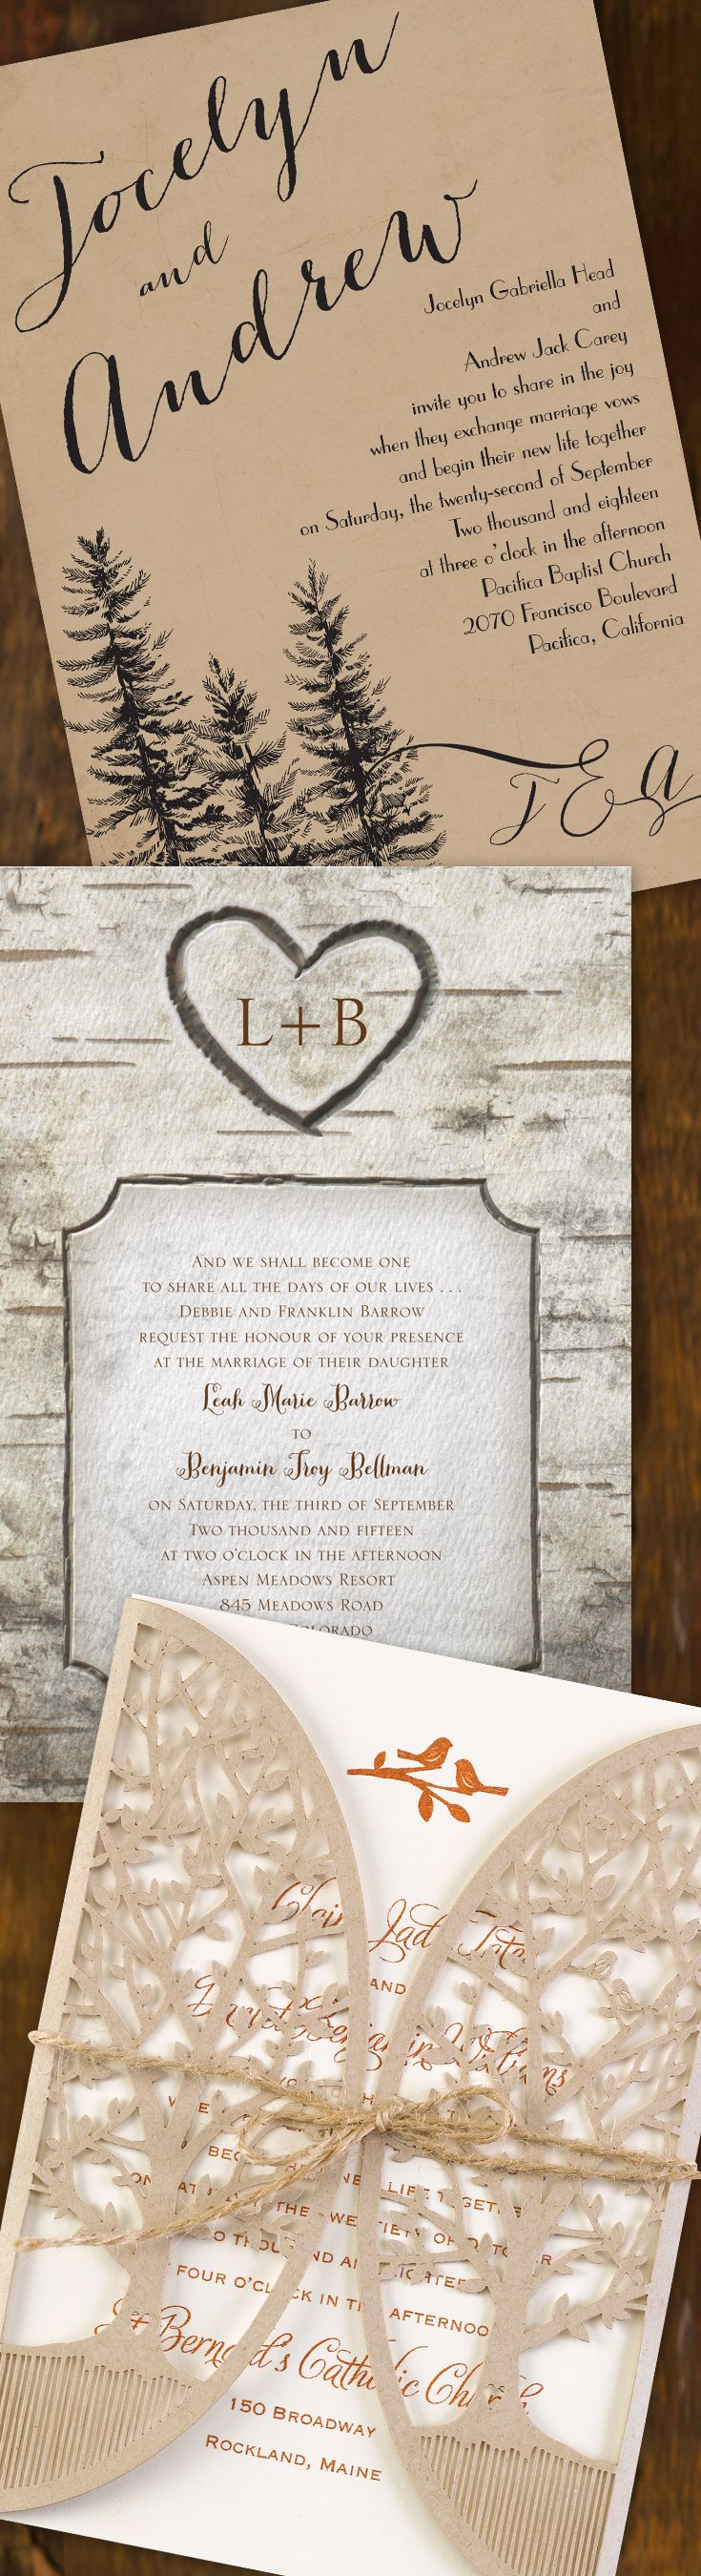 Wedding in the country. Elegant party in an old barn. Escape to the mountains. You're going to need rustic wedding invitations that show your unique style! @dawninvites